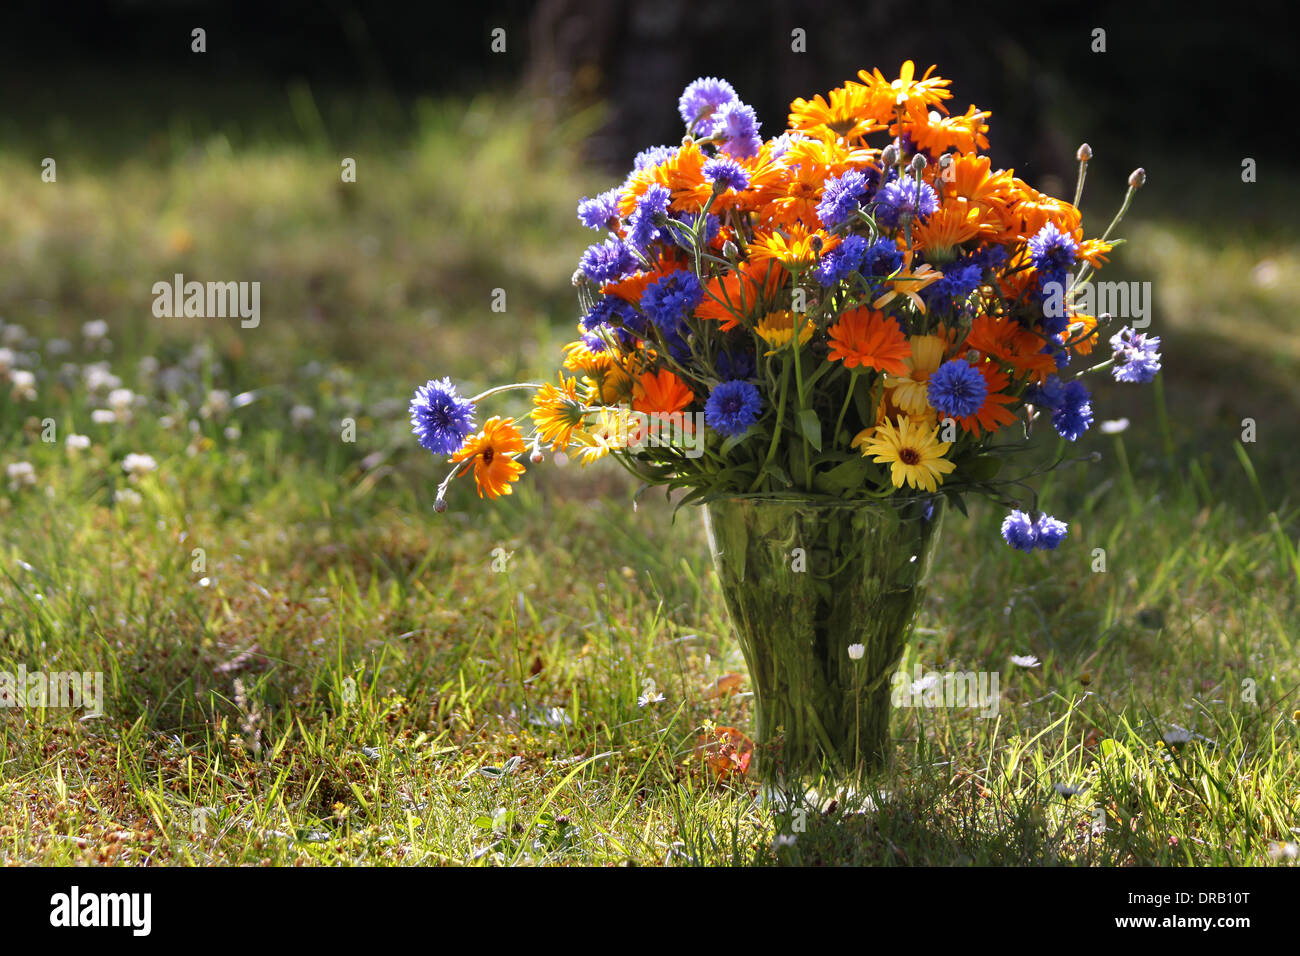 Colorful flower bouquet in a summer meadow - Stock Image